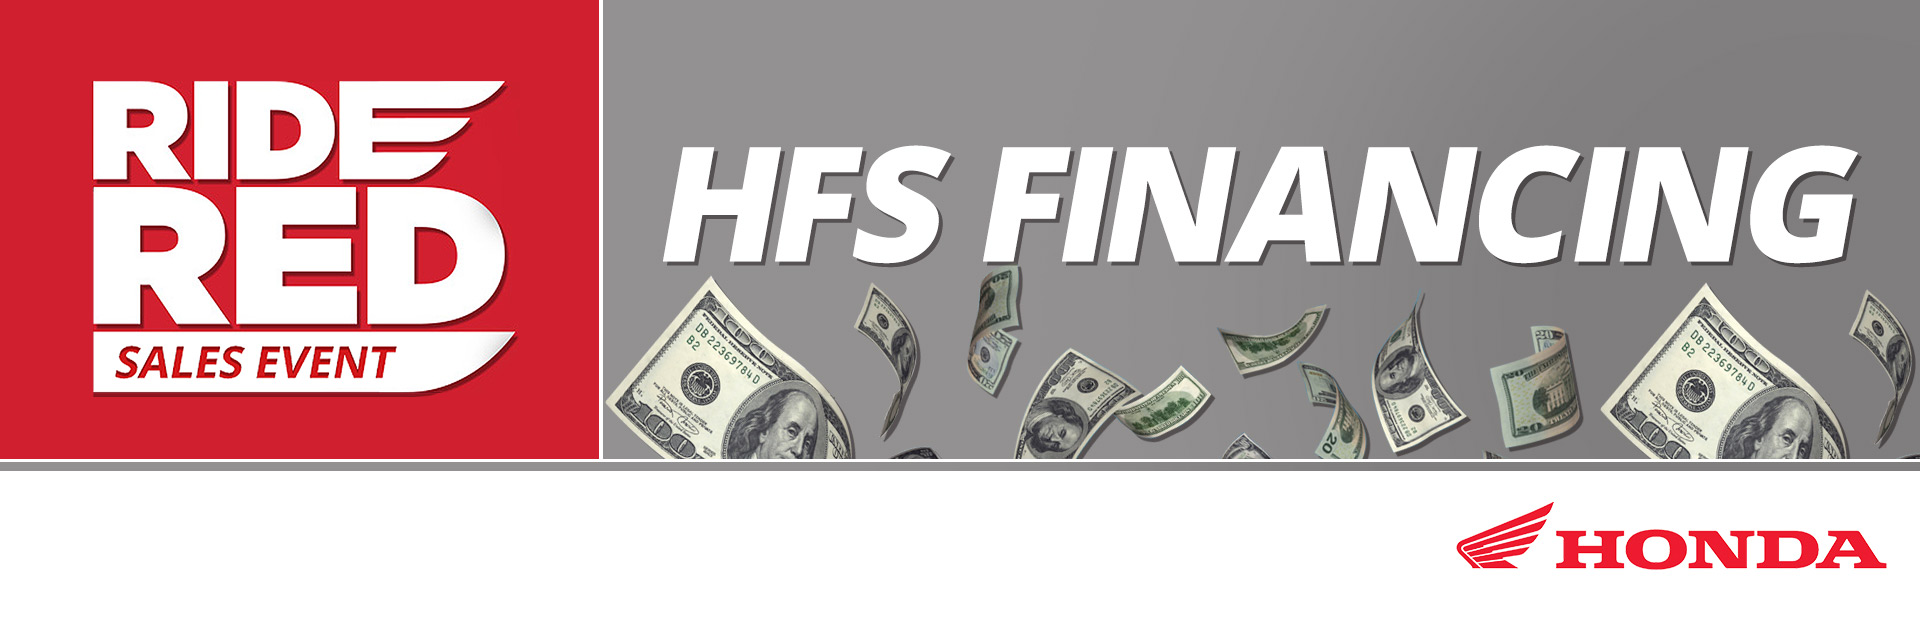 Honda: Ride Red Sales Event: HFS Financing